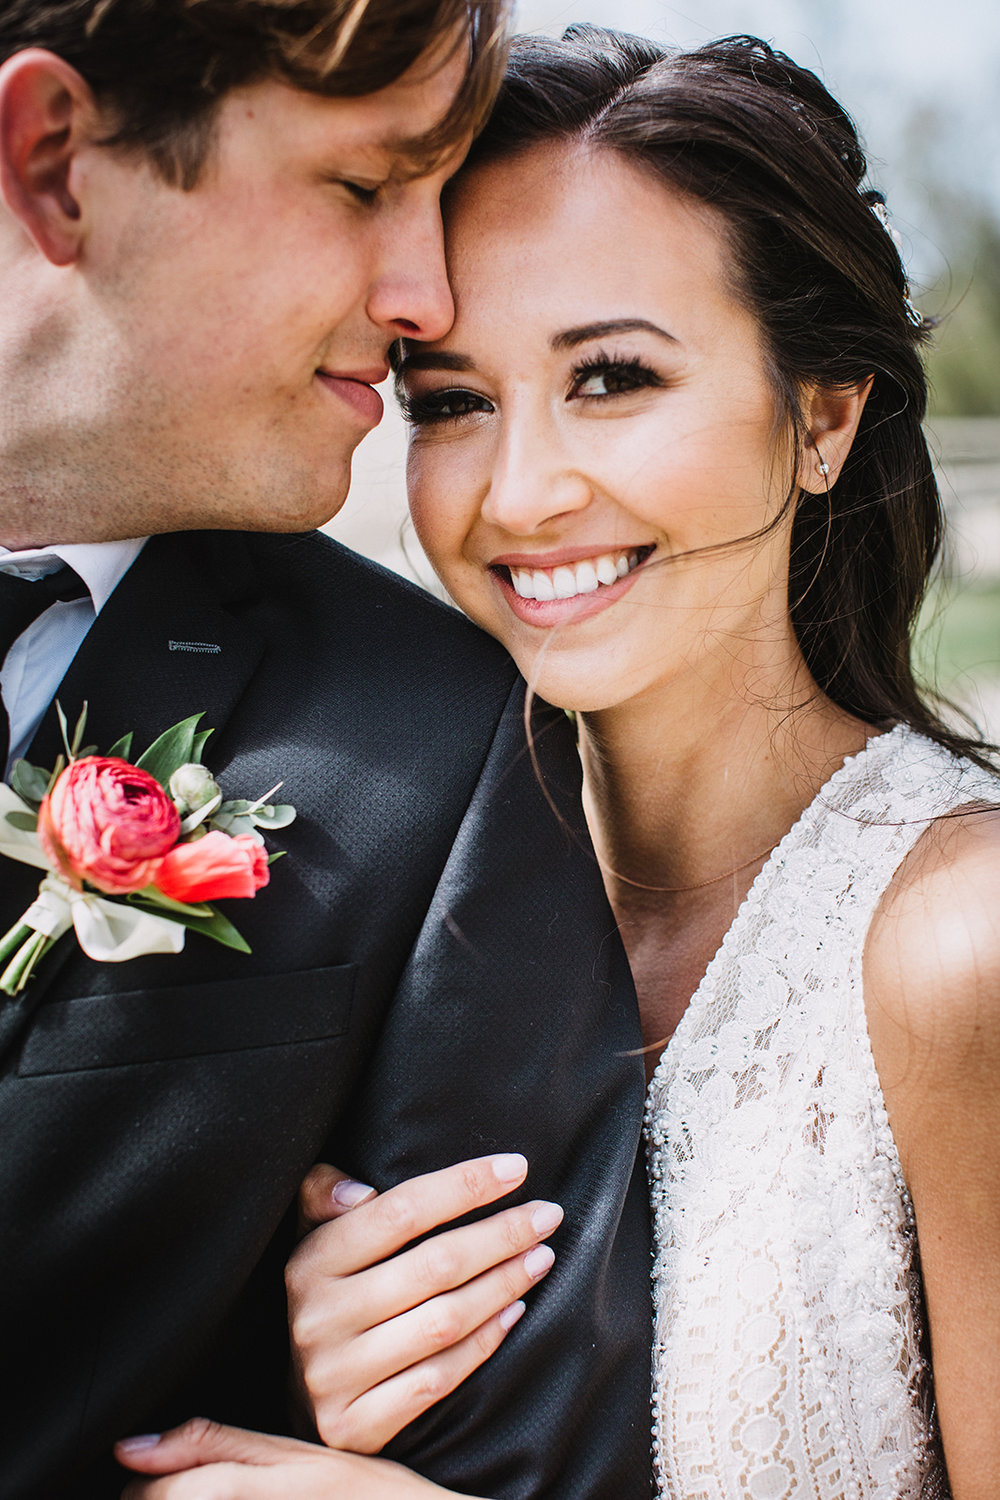 Winnipeg Wedding Photographers - Weddings in Winnipeg